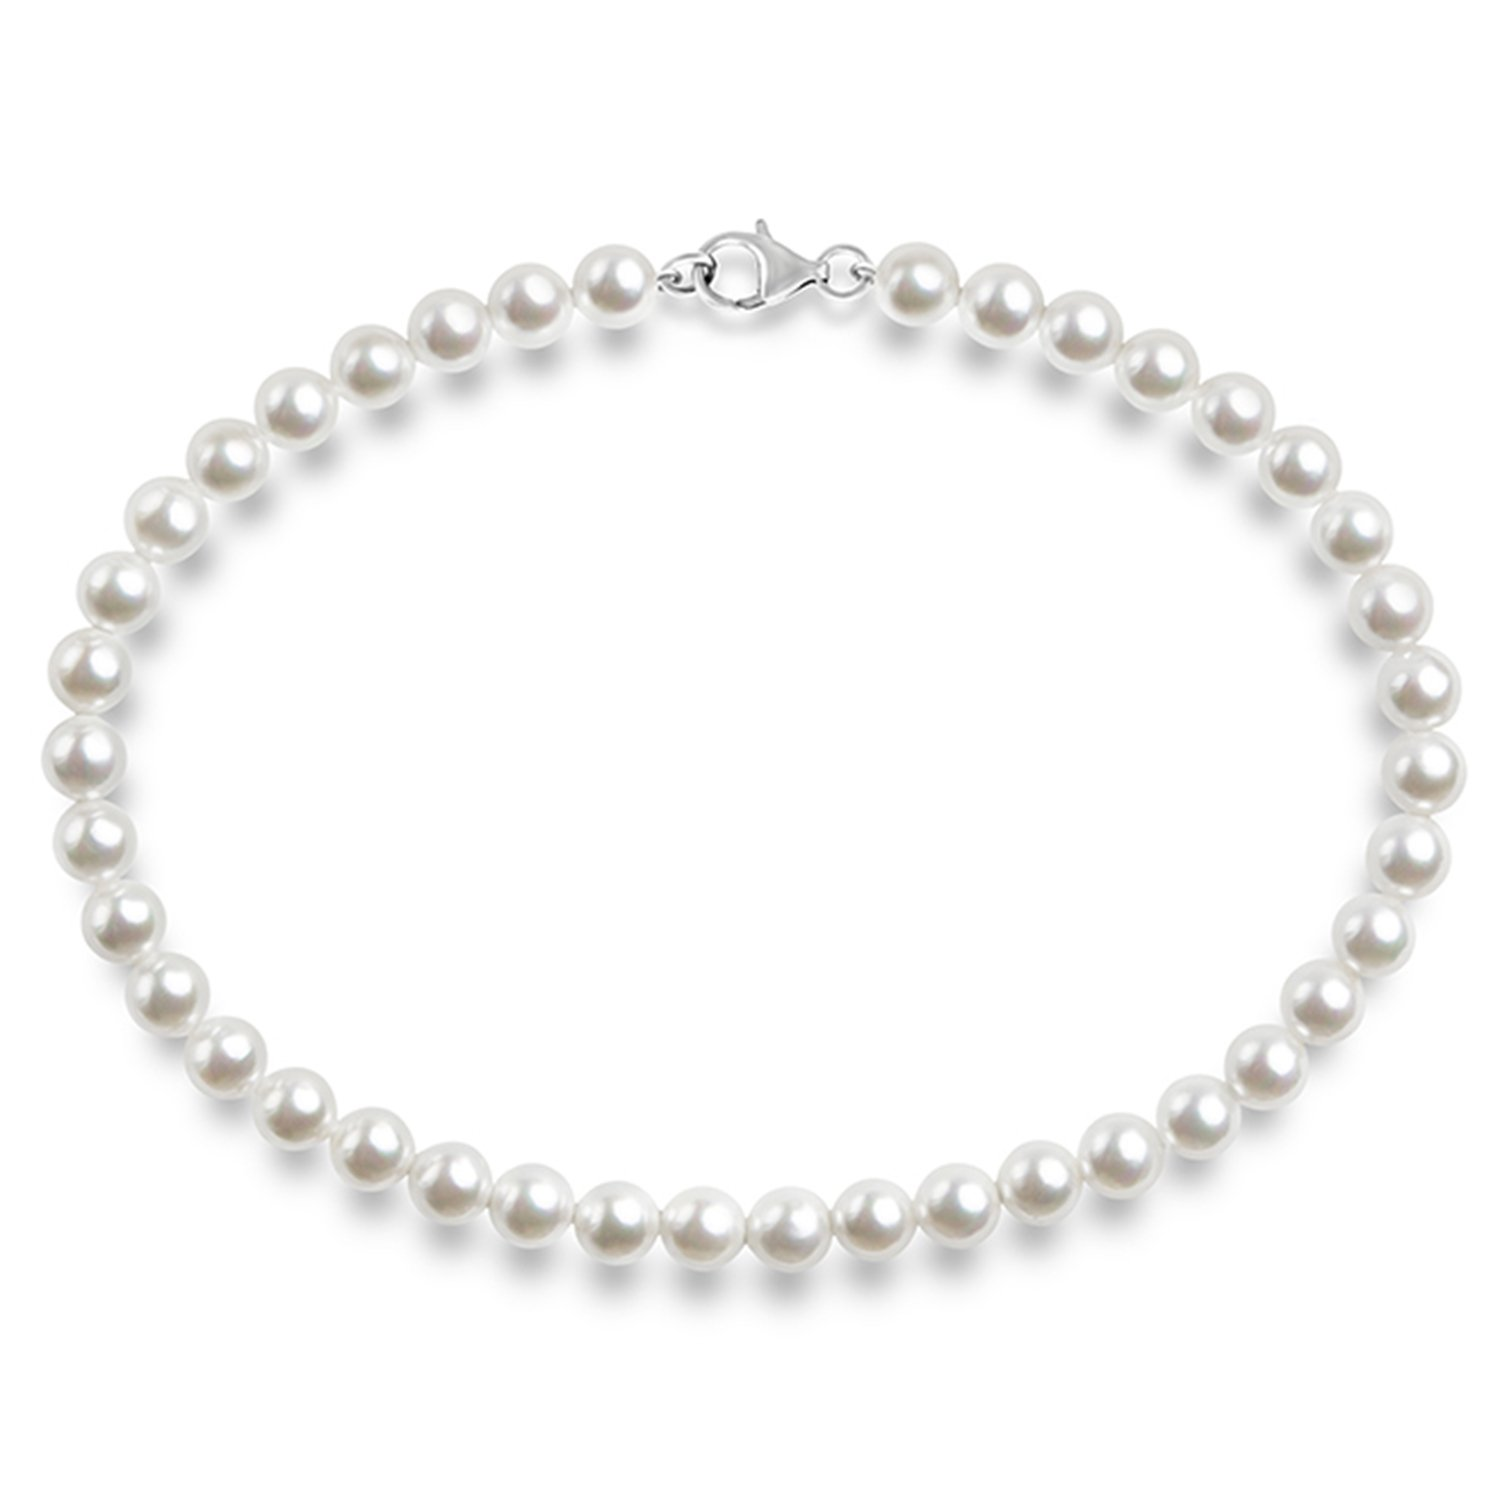 PAVOI Sterling Silver Round White Simulated Shell Pearl Necklace Strand NECKS166